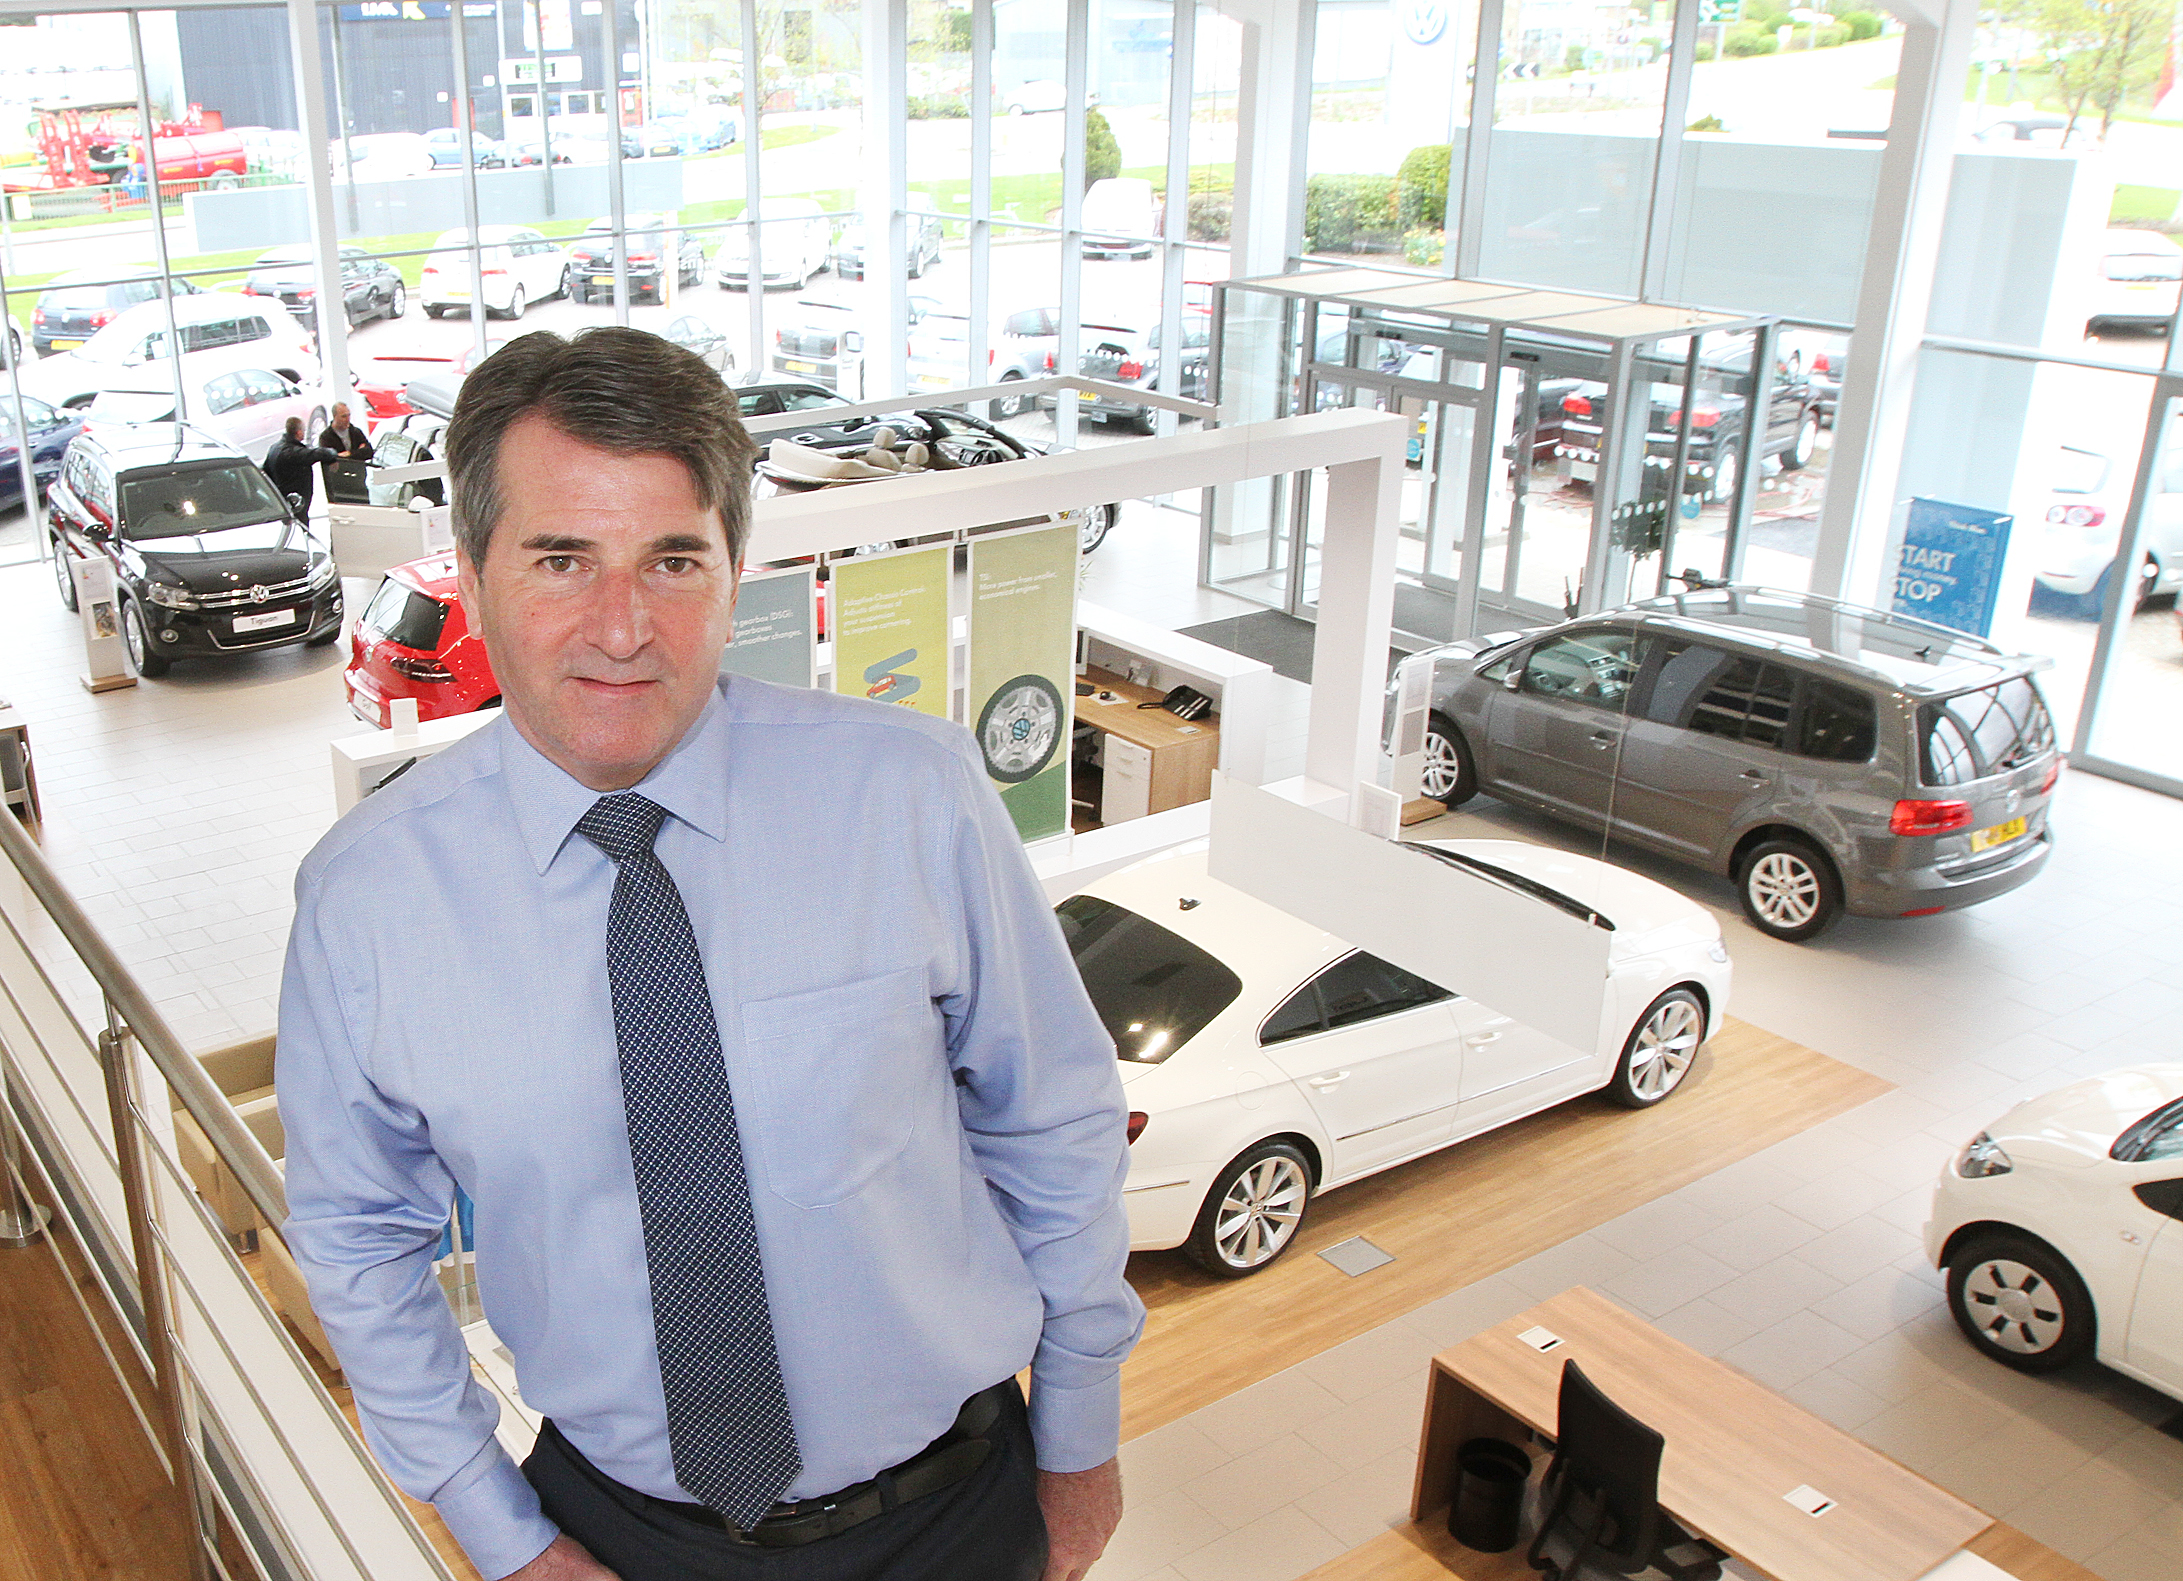 REVAMP: Owner Frank Greenway unveils the new £500,000 refurbishment to the showroom and service areas at White Rose VW, Cross Hills